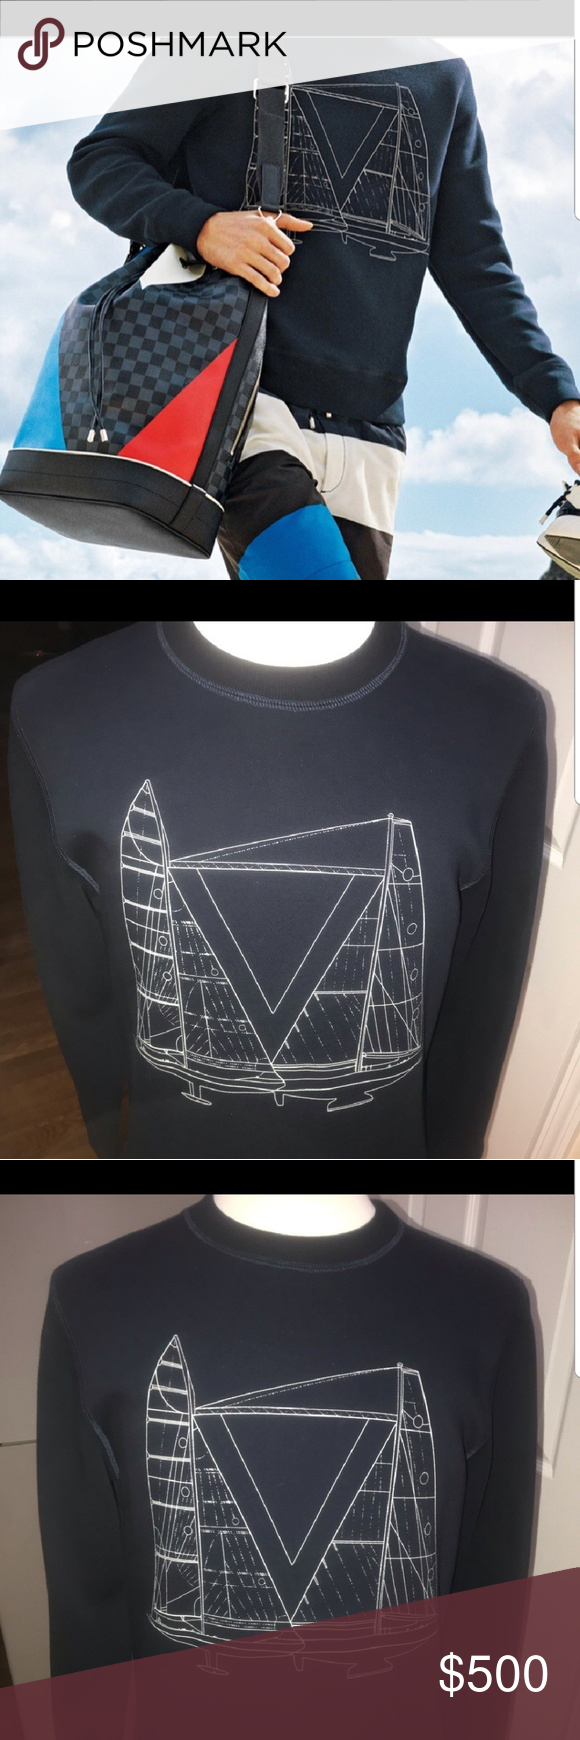 71aeb111de6e Louis Vuitton America s Cup Sweater Used (Excellent Condition) Only worn  twice! 100% Authentic From Louis Vuitton s America s Cup Capsule Collection  Louis ...